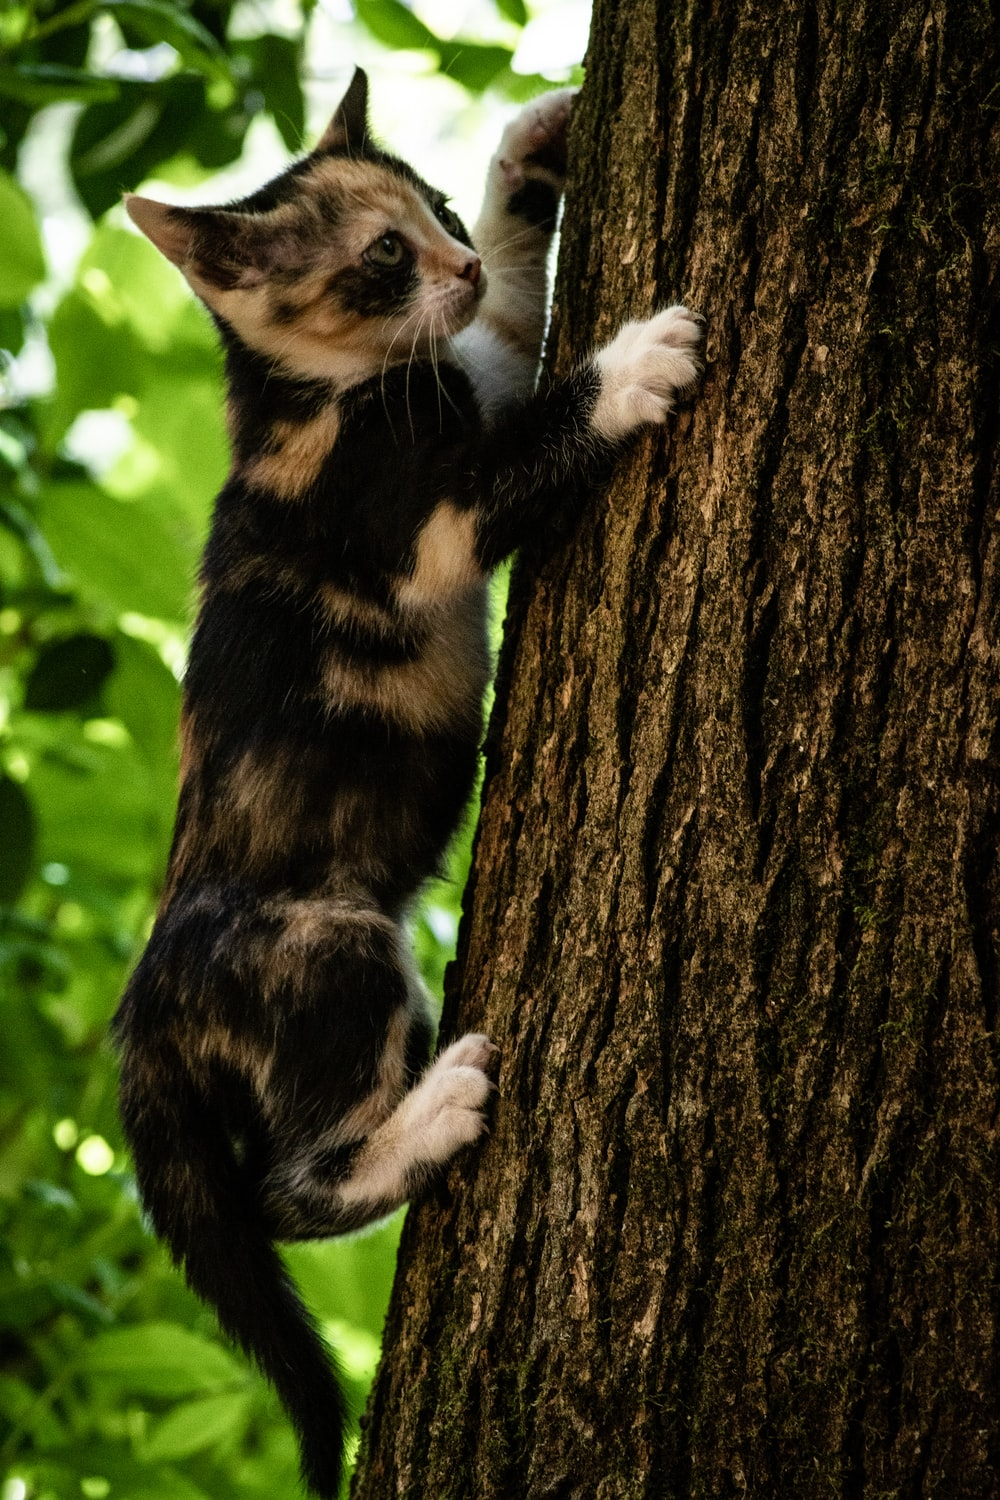 black and brown cat on tree trunk during daytim e